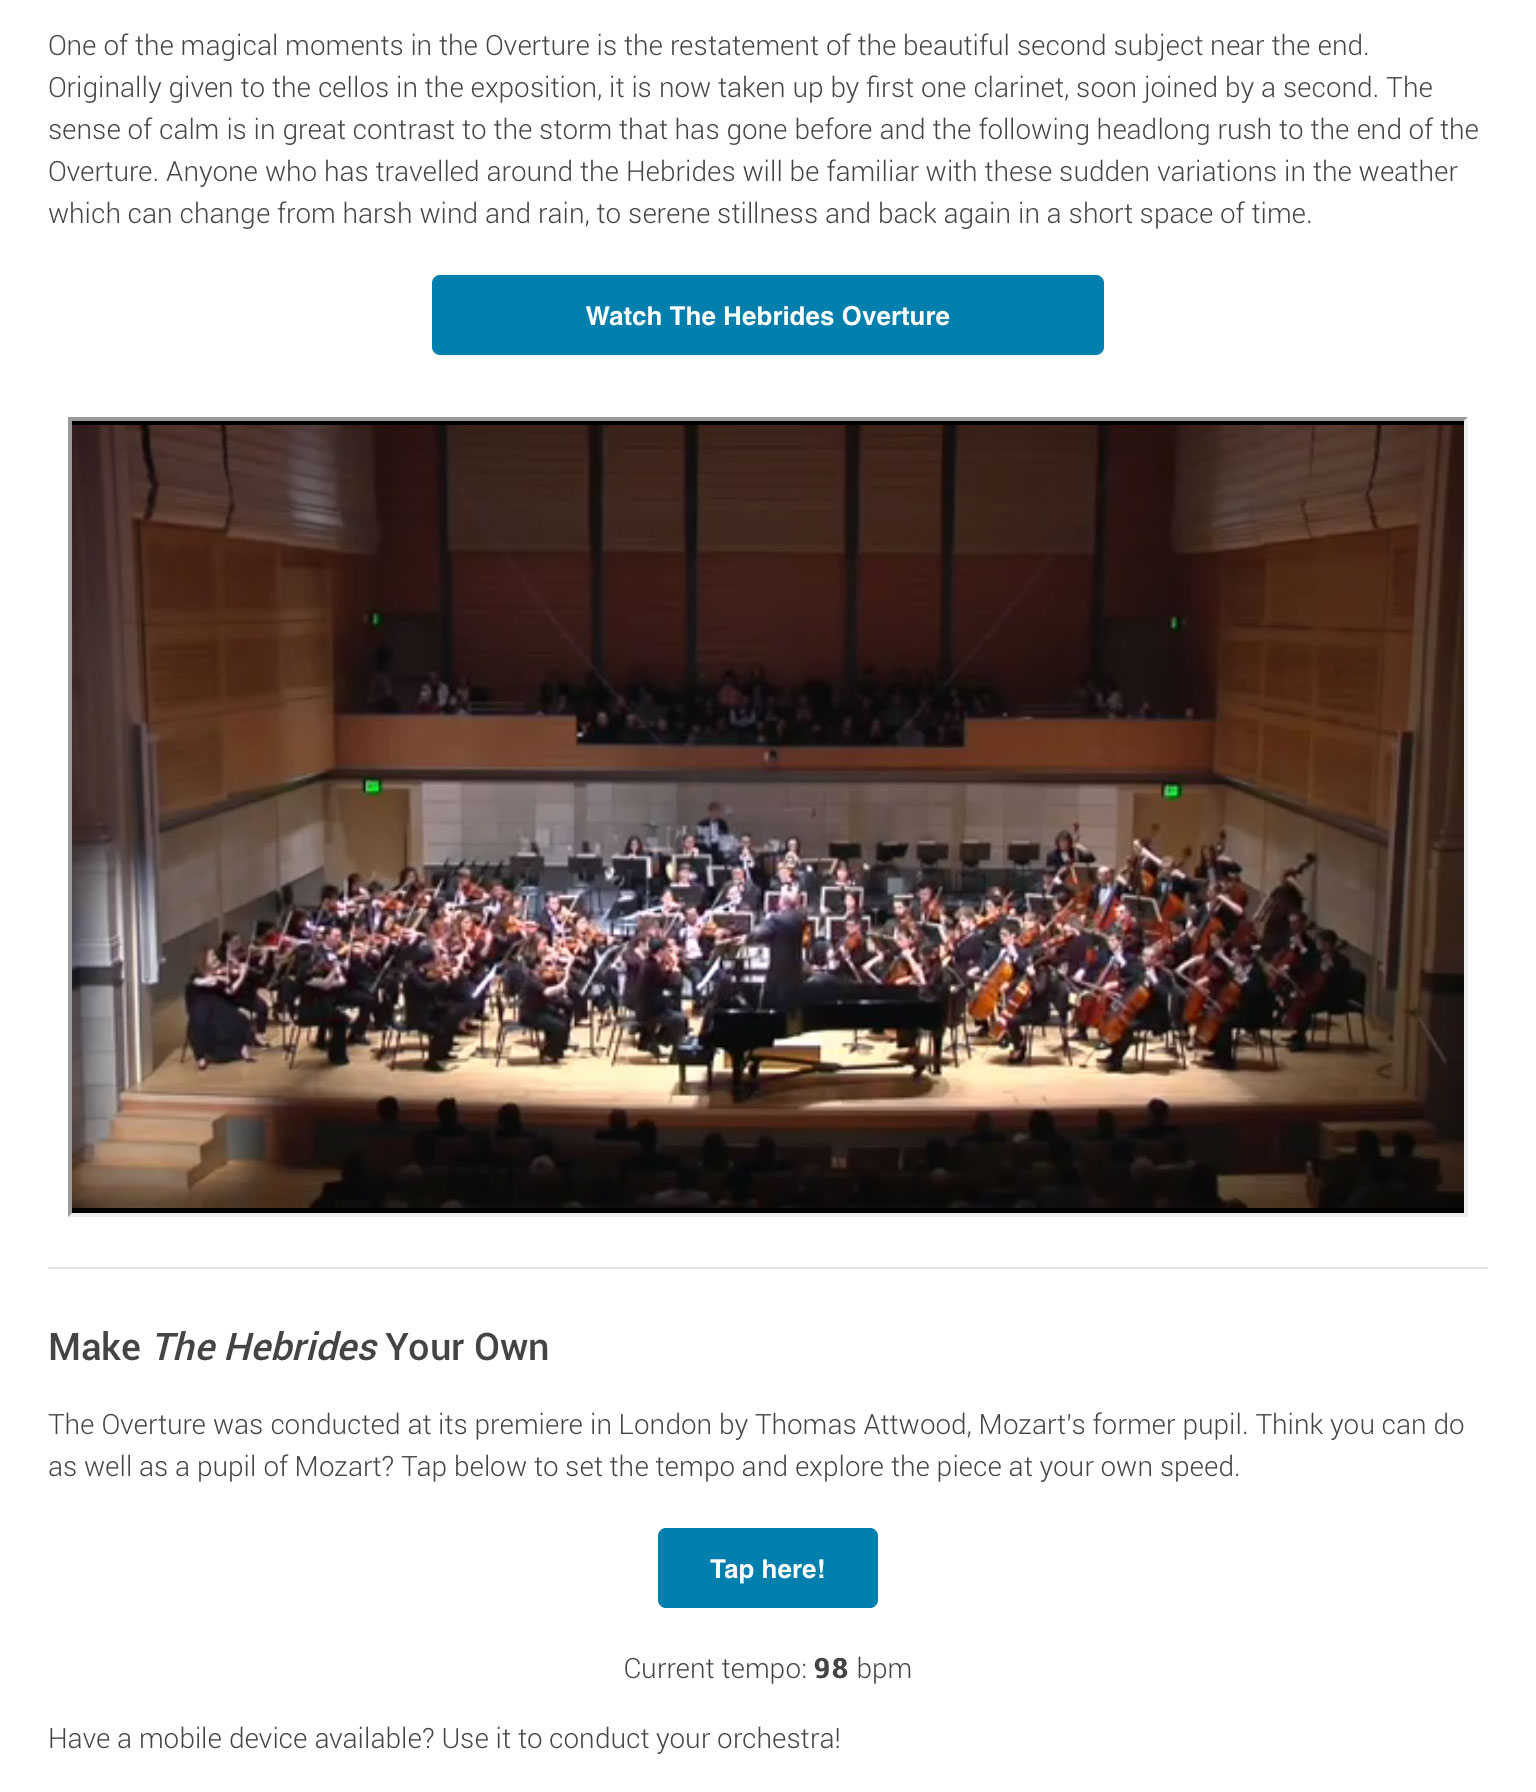 This e-book from VitalSource lets readers experiment to change the tempo of a musical performance.